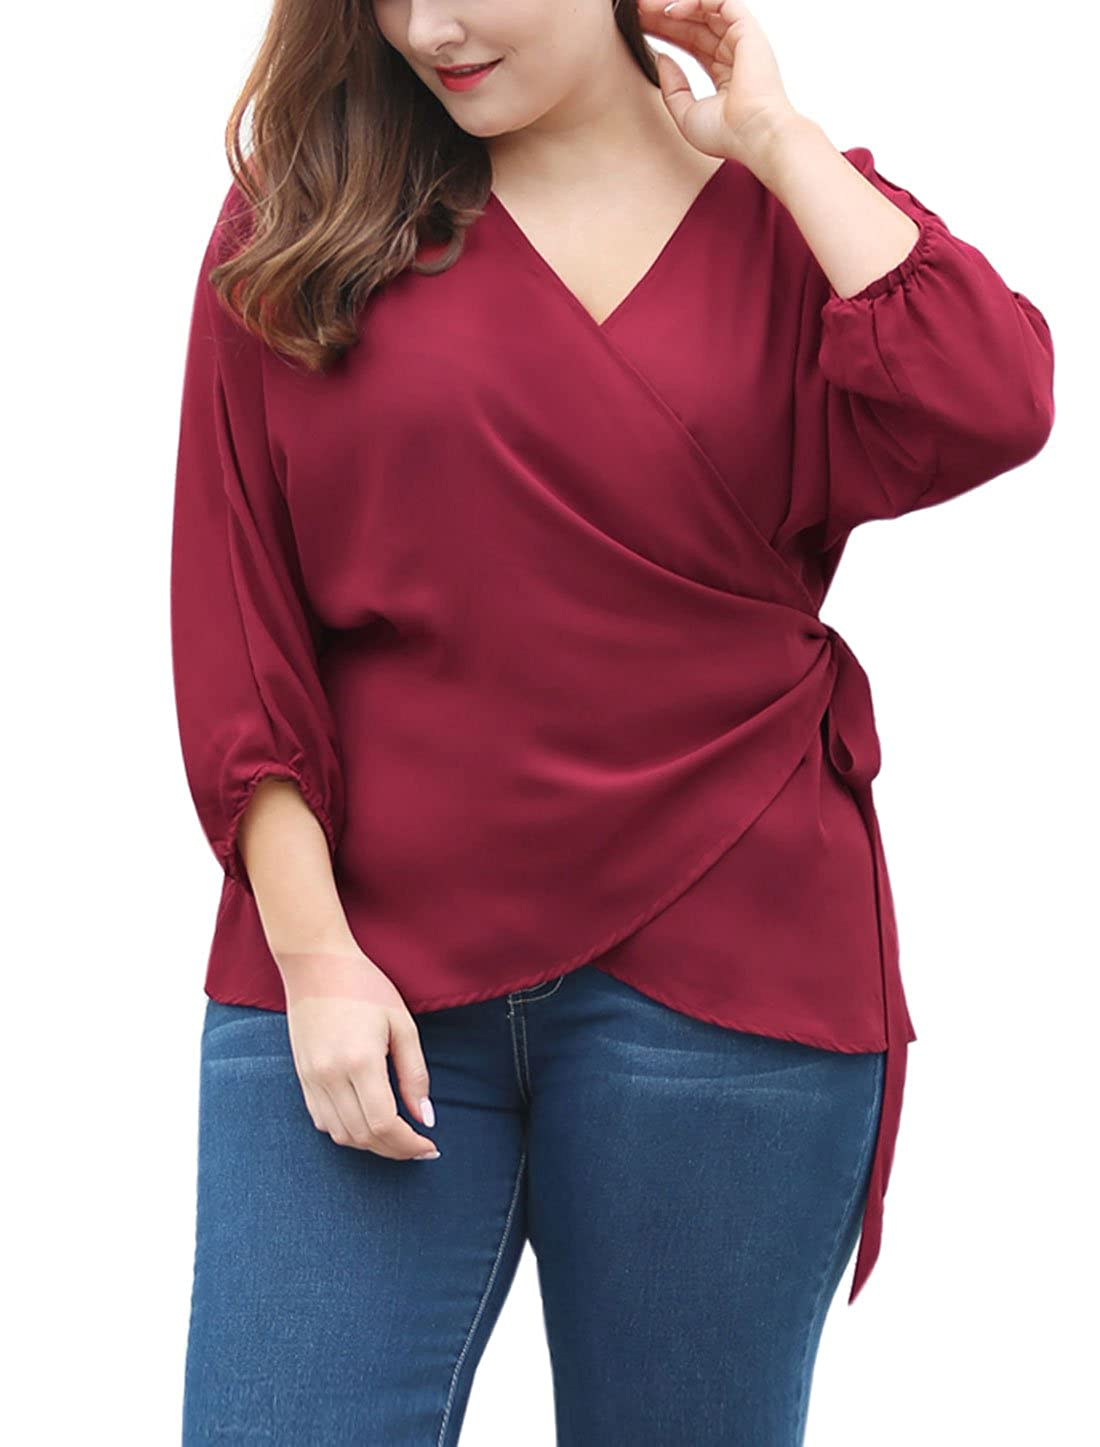 uxcell Women's Plus Size Tie-Belt V-Neck Wrap Chiffon Top g16112100ux0016